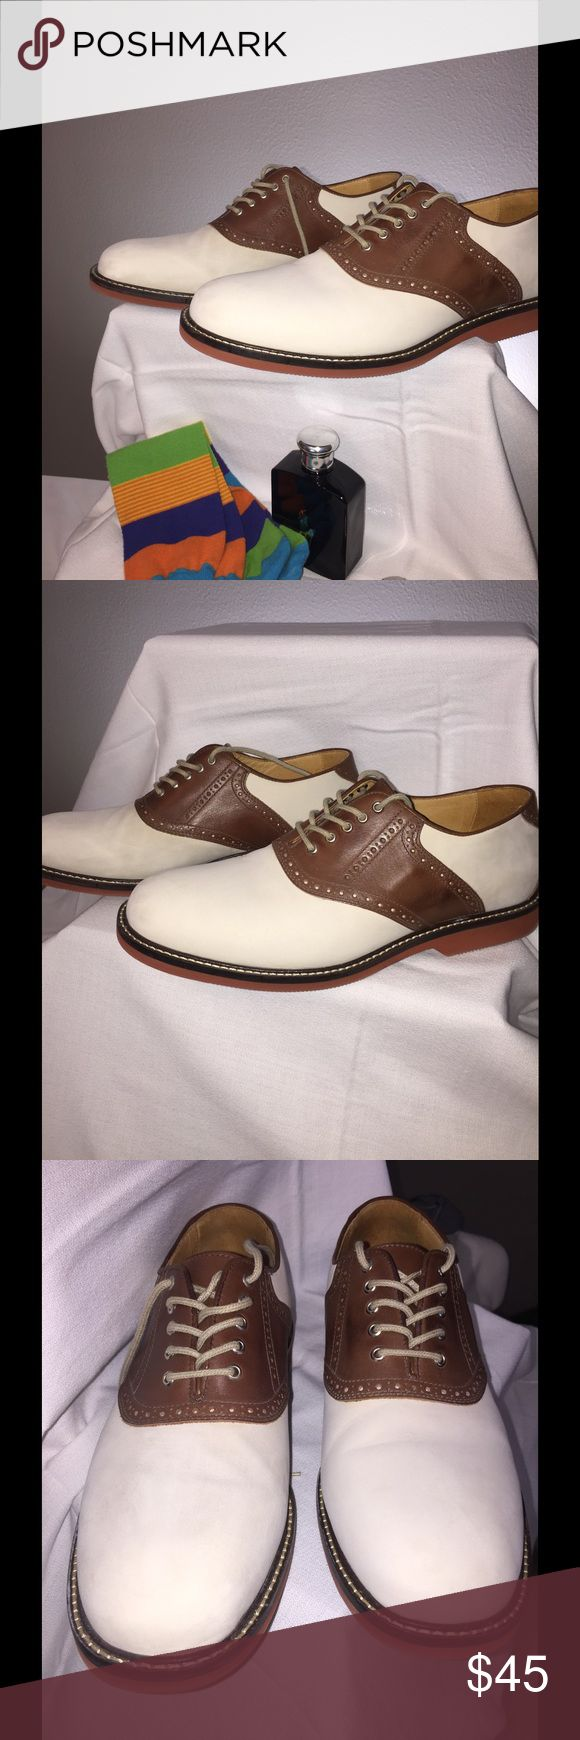 Men's Saddle | Oxfords by Johnston & Murphy Like New. White and Tan saddle shoes. Sheepskin/Moisture~Wicking Insole. These are truly a classic. Johnston & Murphy Shoes Loafers & Slip-Ons